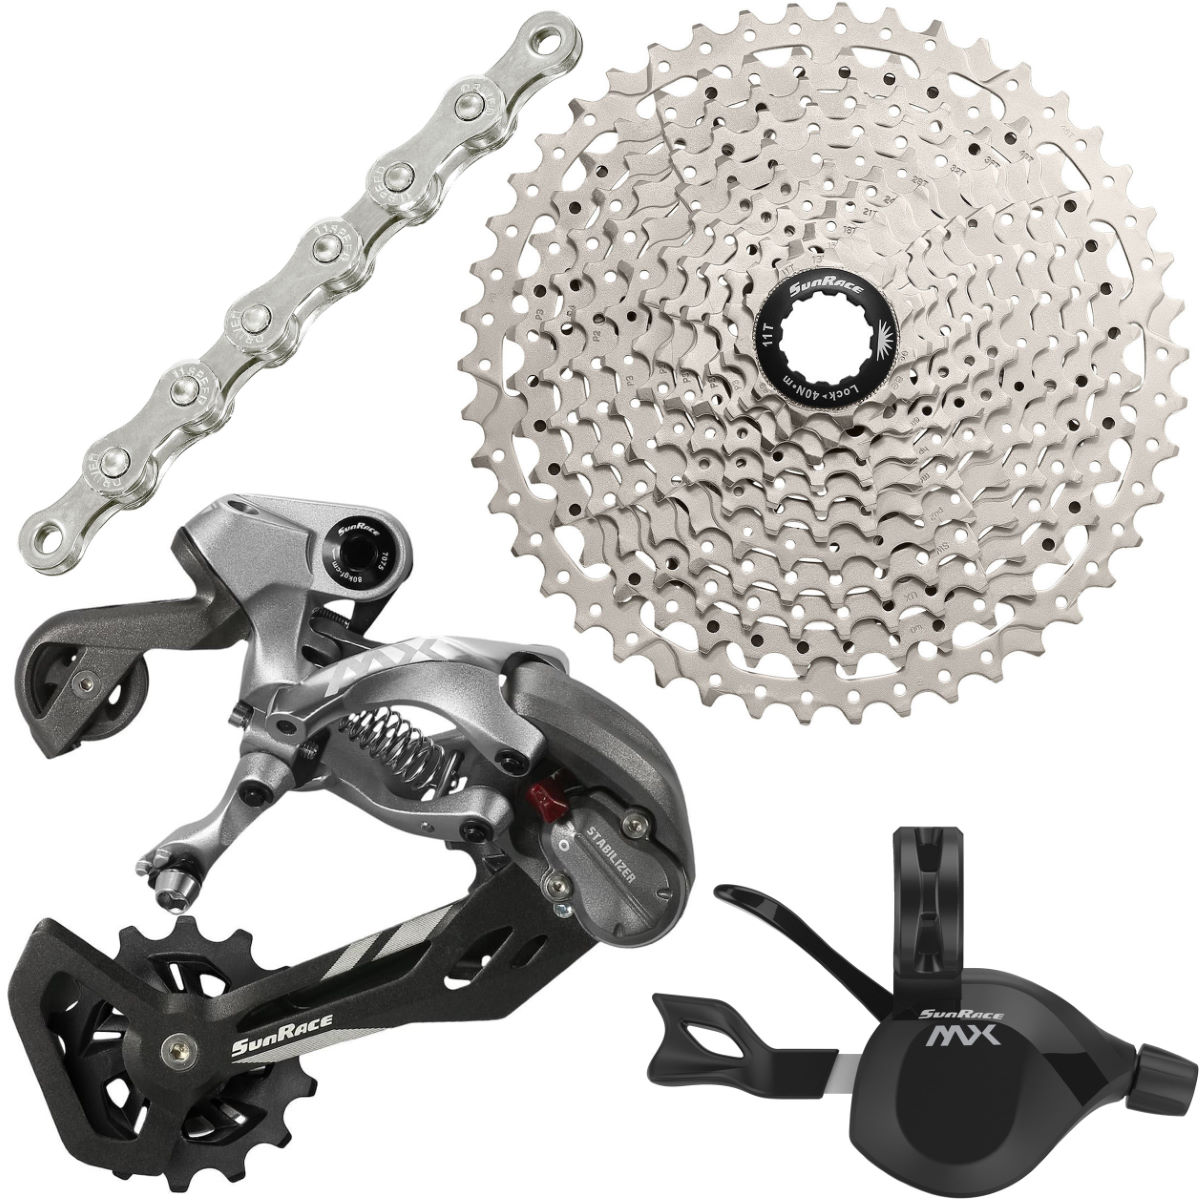 SunRace SunRace 11 Speed Groupset   Groupsets